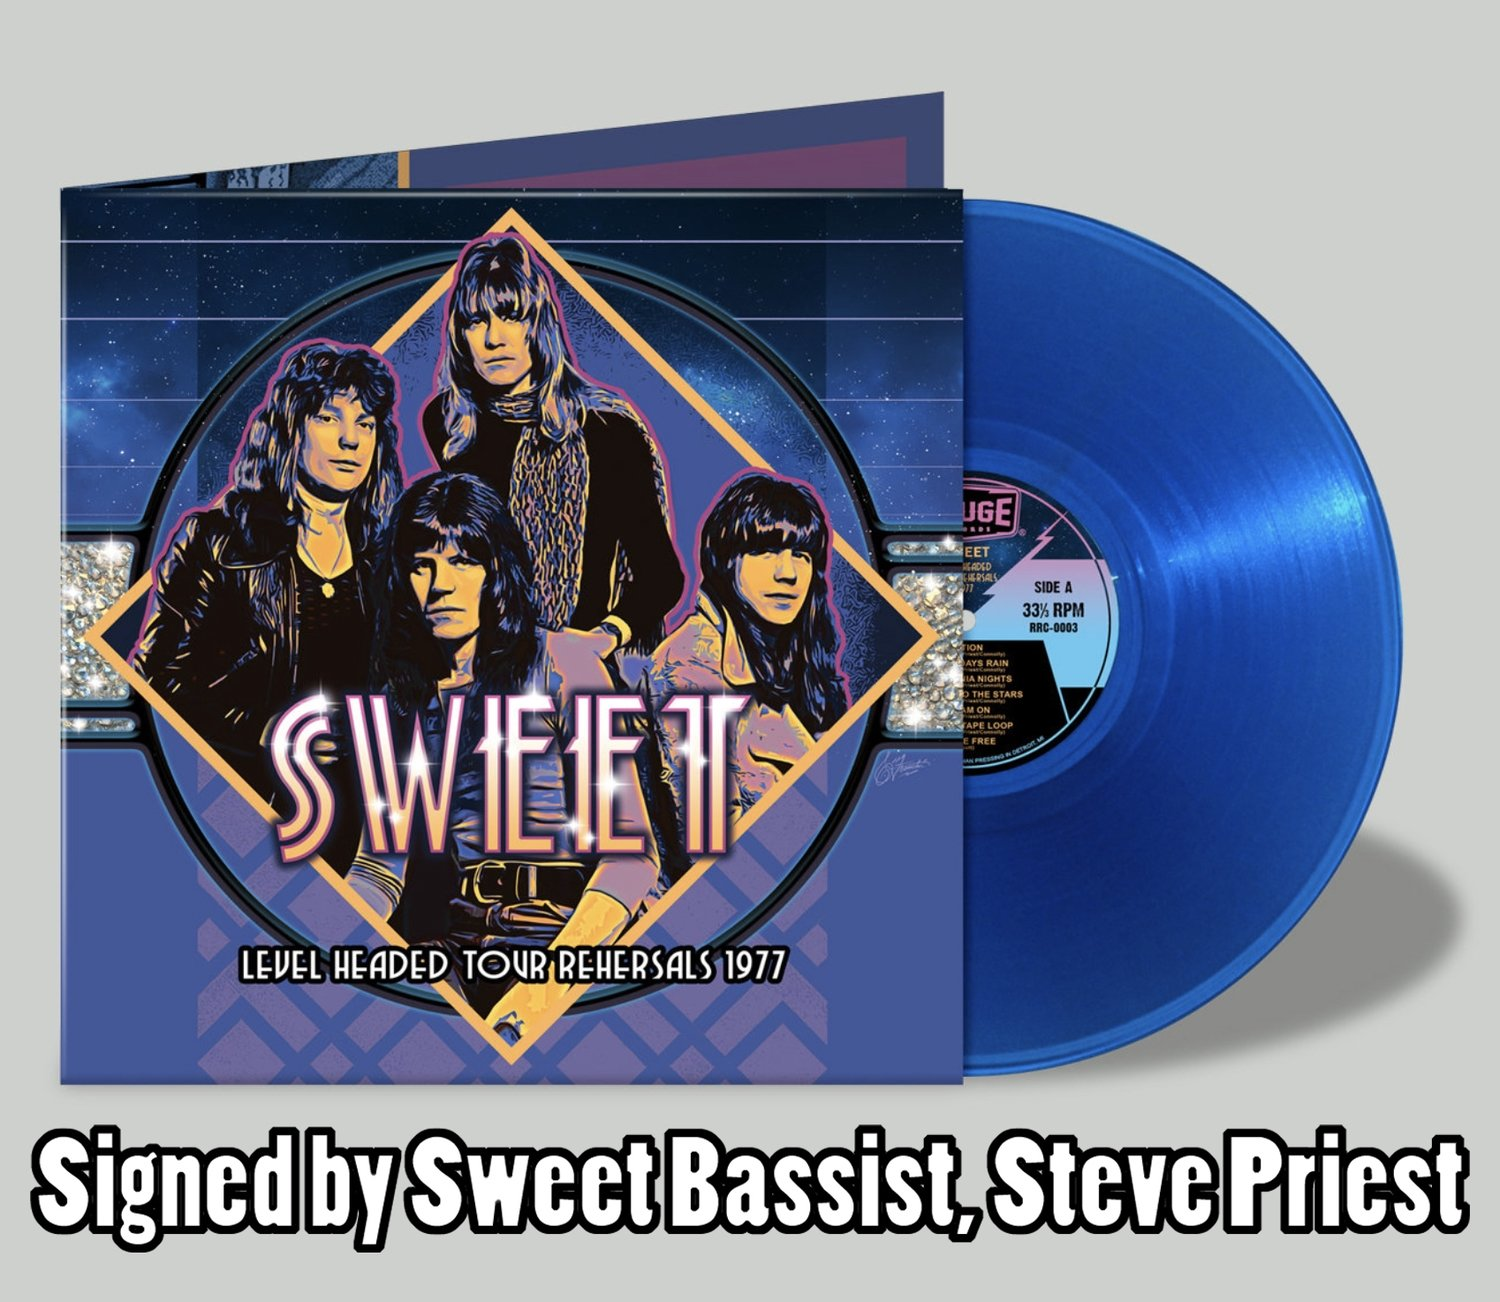 """Sweet """"Level Headed Tour Rehearsals 1977"""" -- Limited Edition Blue Vinyl SIGNED BY STEVE PRIEST"""